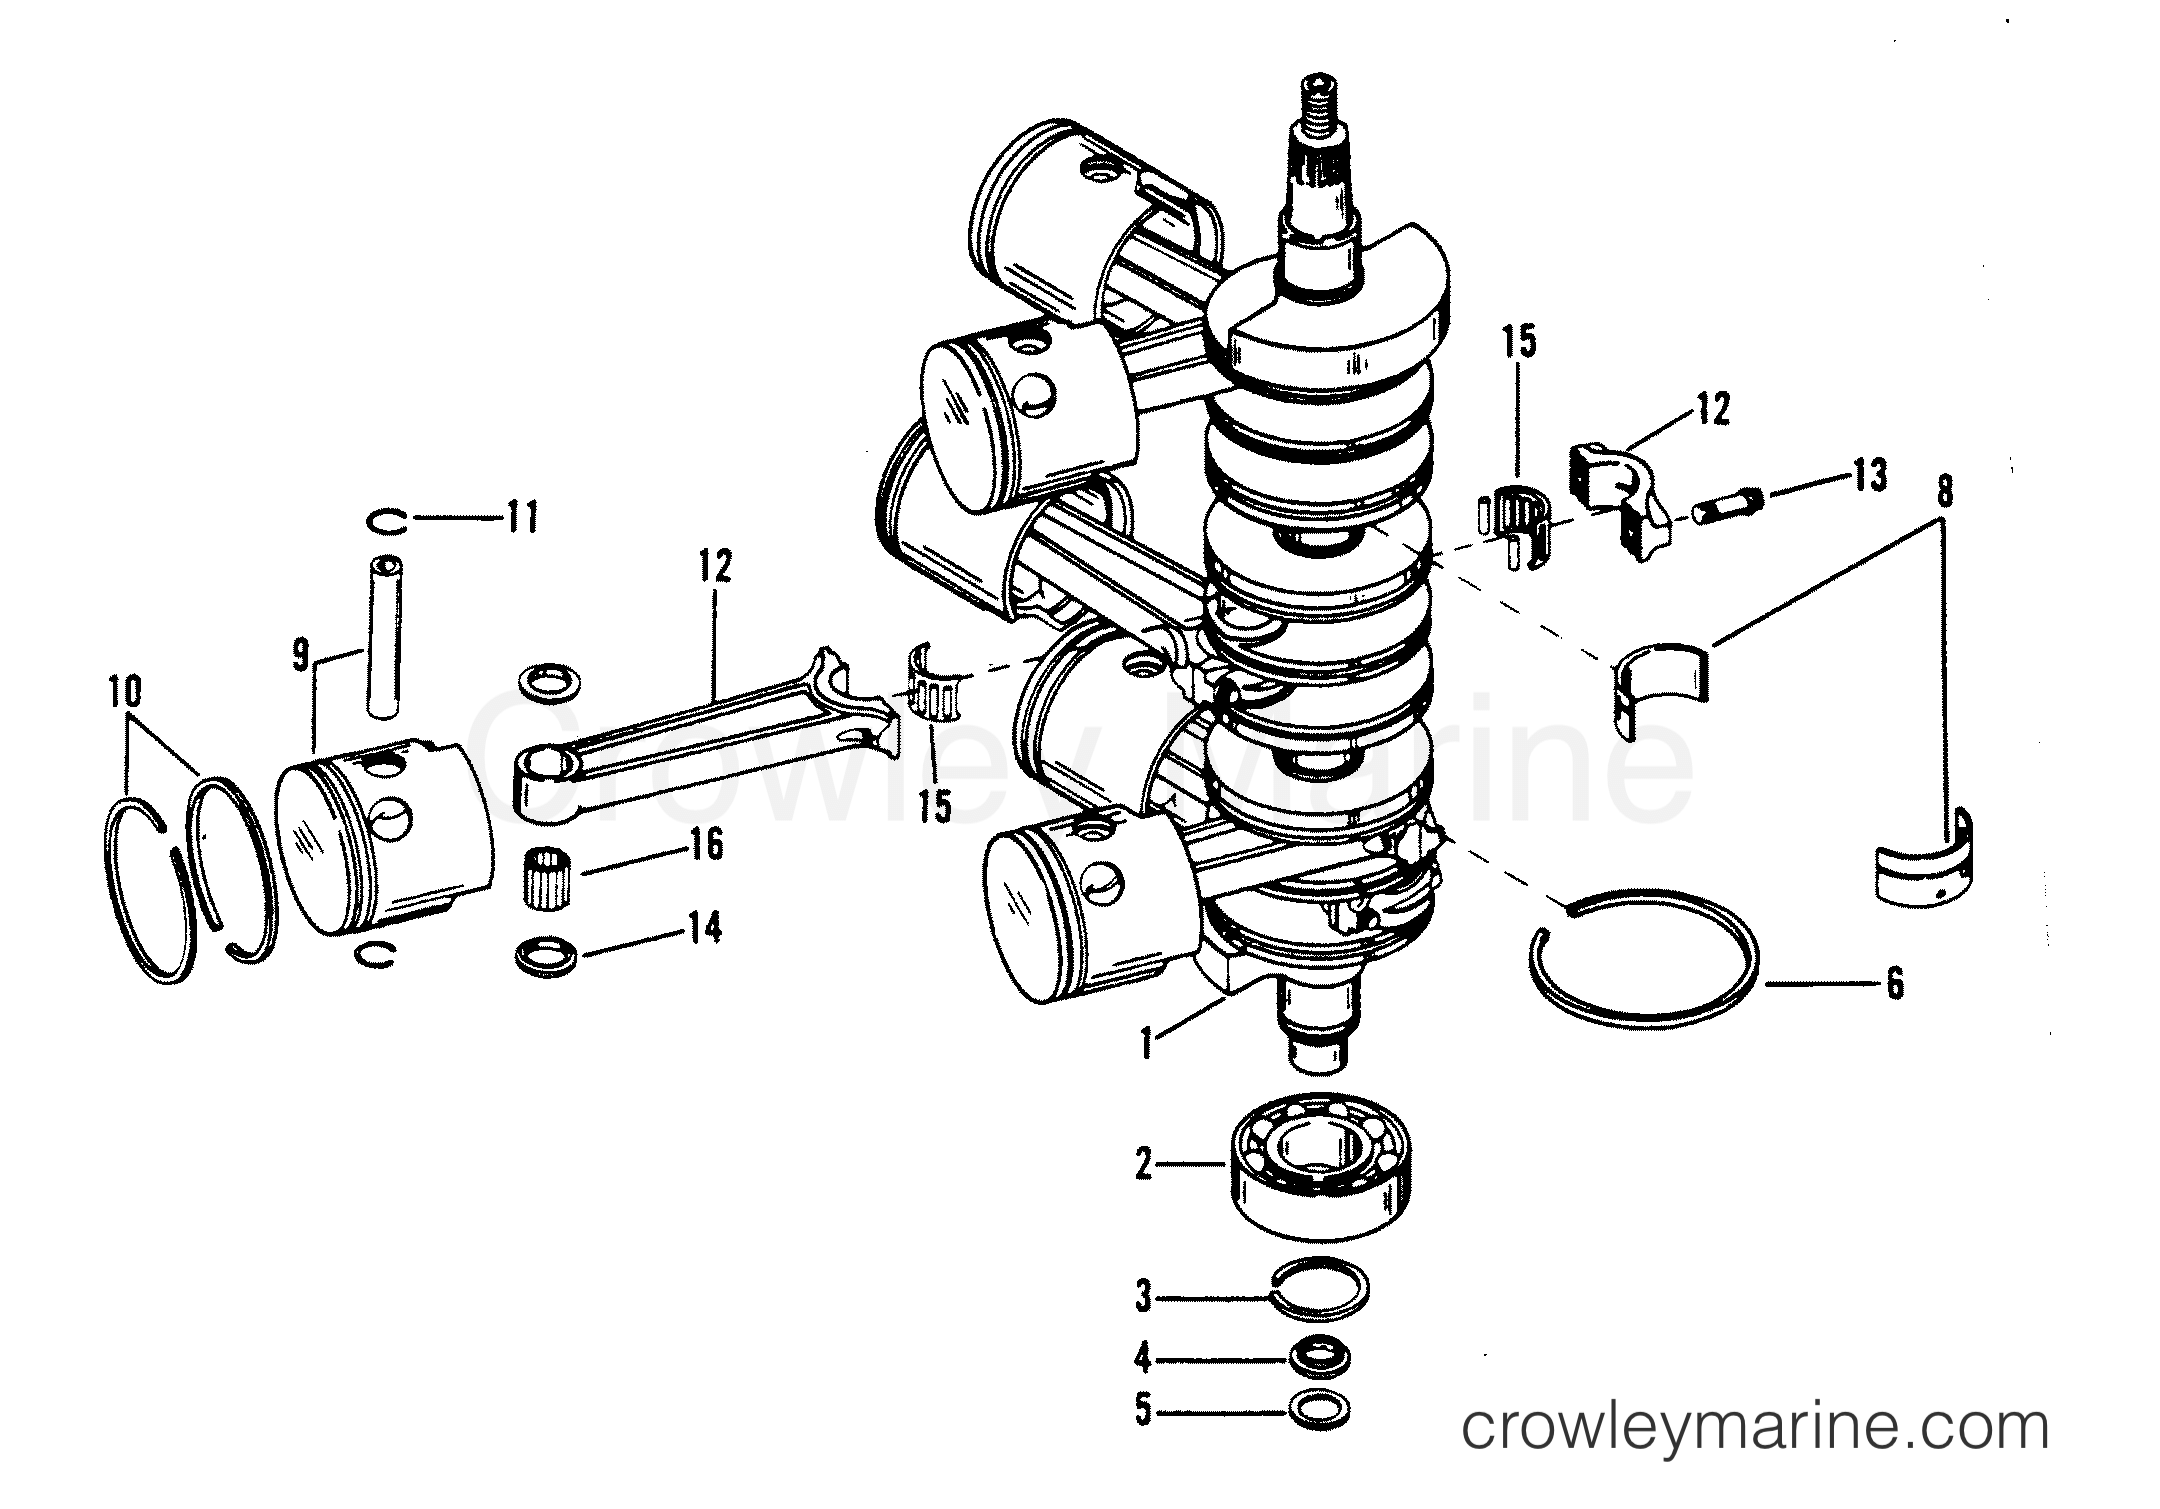 1991 Mercury Race Outboard 2.5L [L EFI] - 7925211YH - CRANKSHAFT, PISTONS AND CONNECTING RODS section